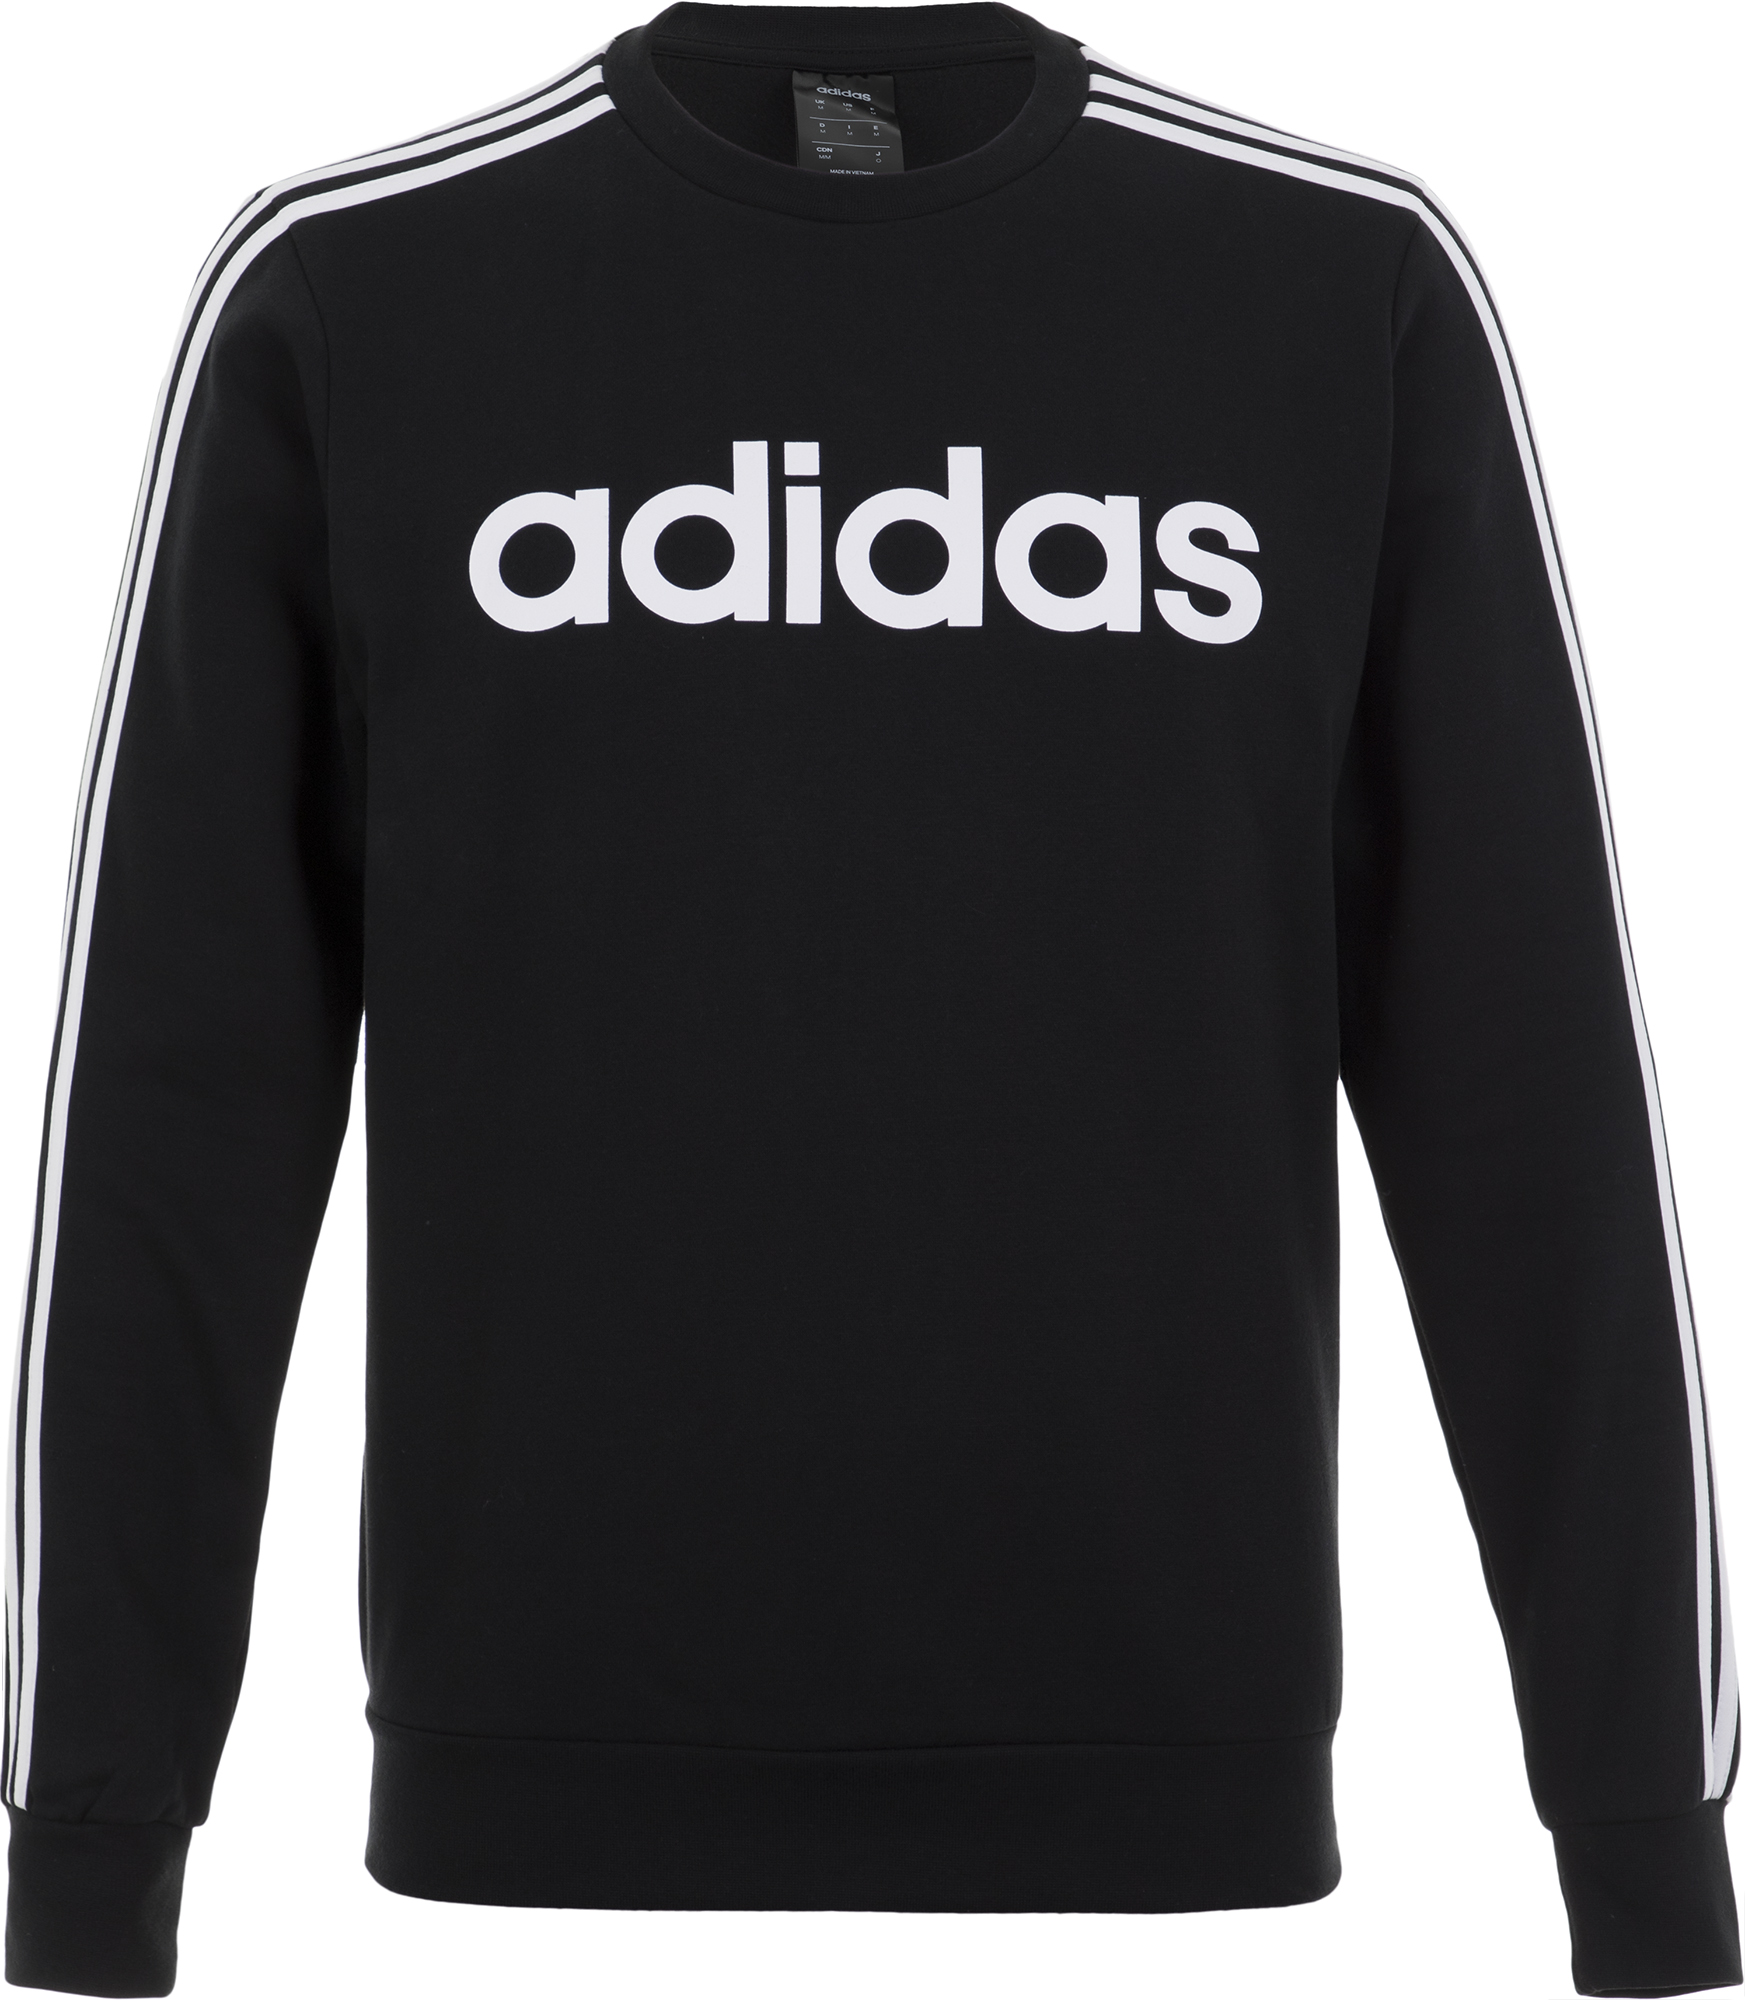 цена на Adidas Свитшот мужской Adidas Essential 3-Stripes Crew, размер 56